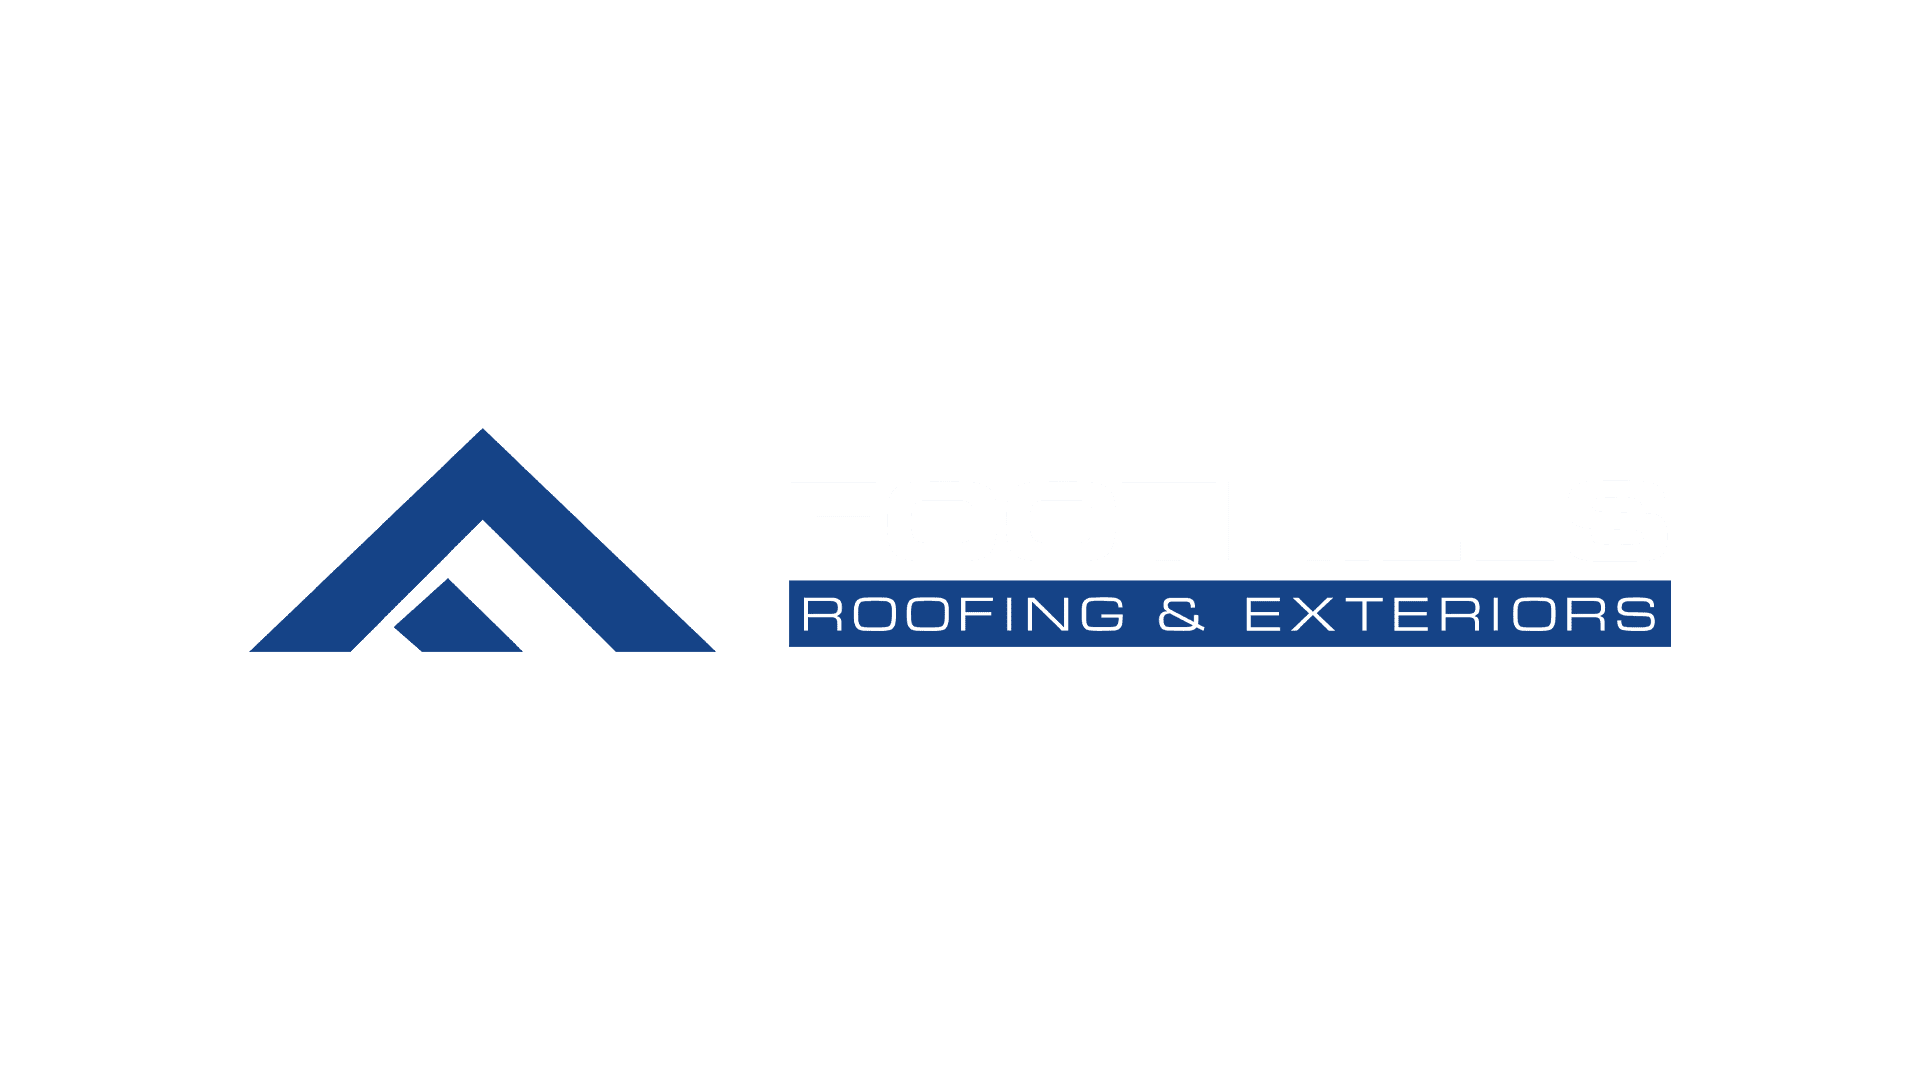 Foothills Roofing & Exteriors